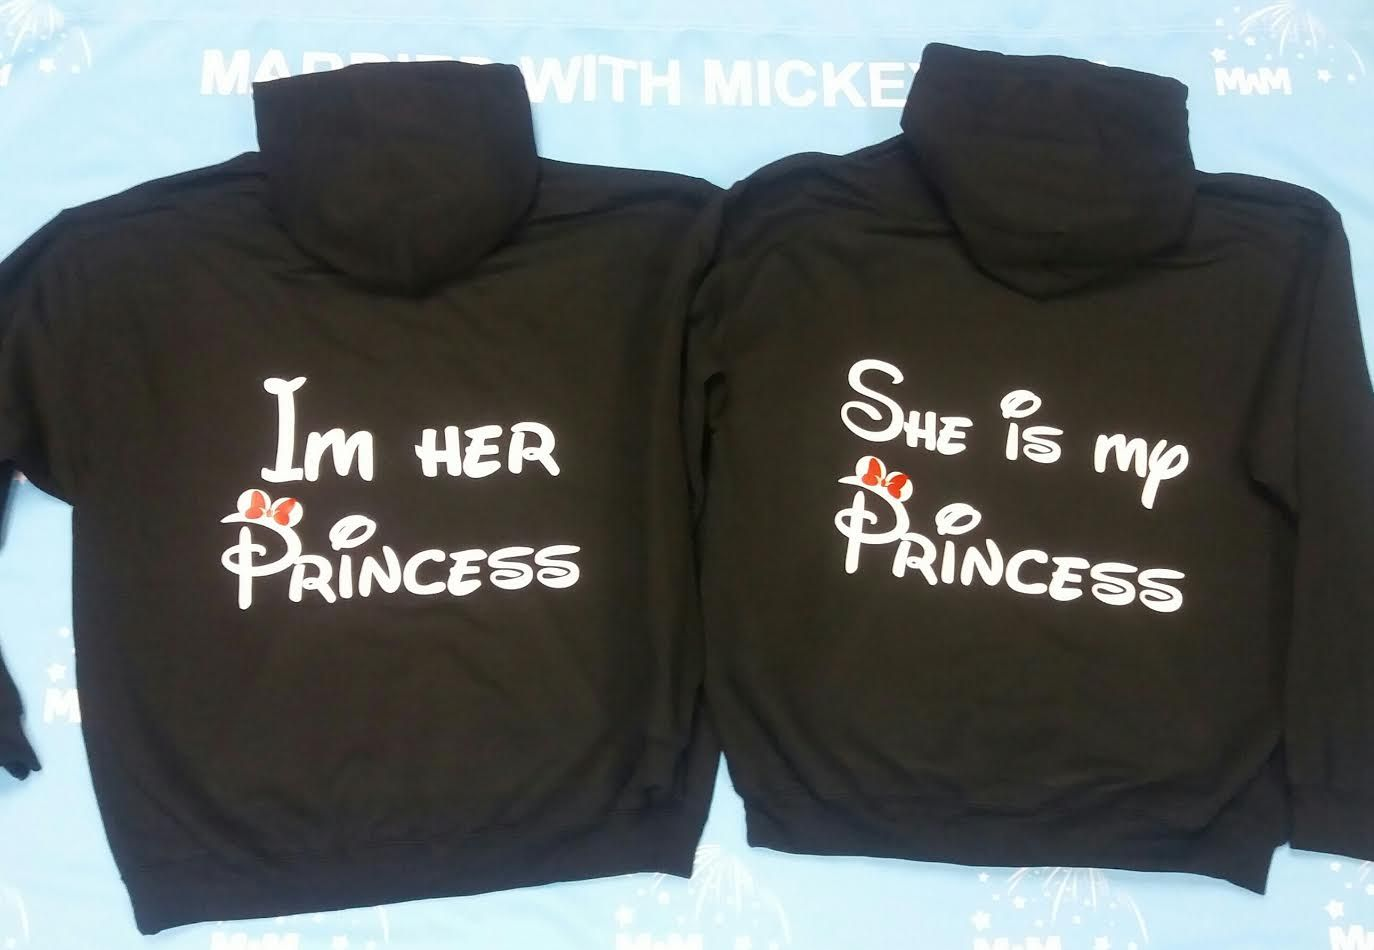 ca24157b7 LGBT Lesbians She's Mine Her Princess With Mickey's Hands and Date ...